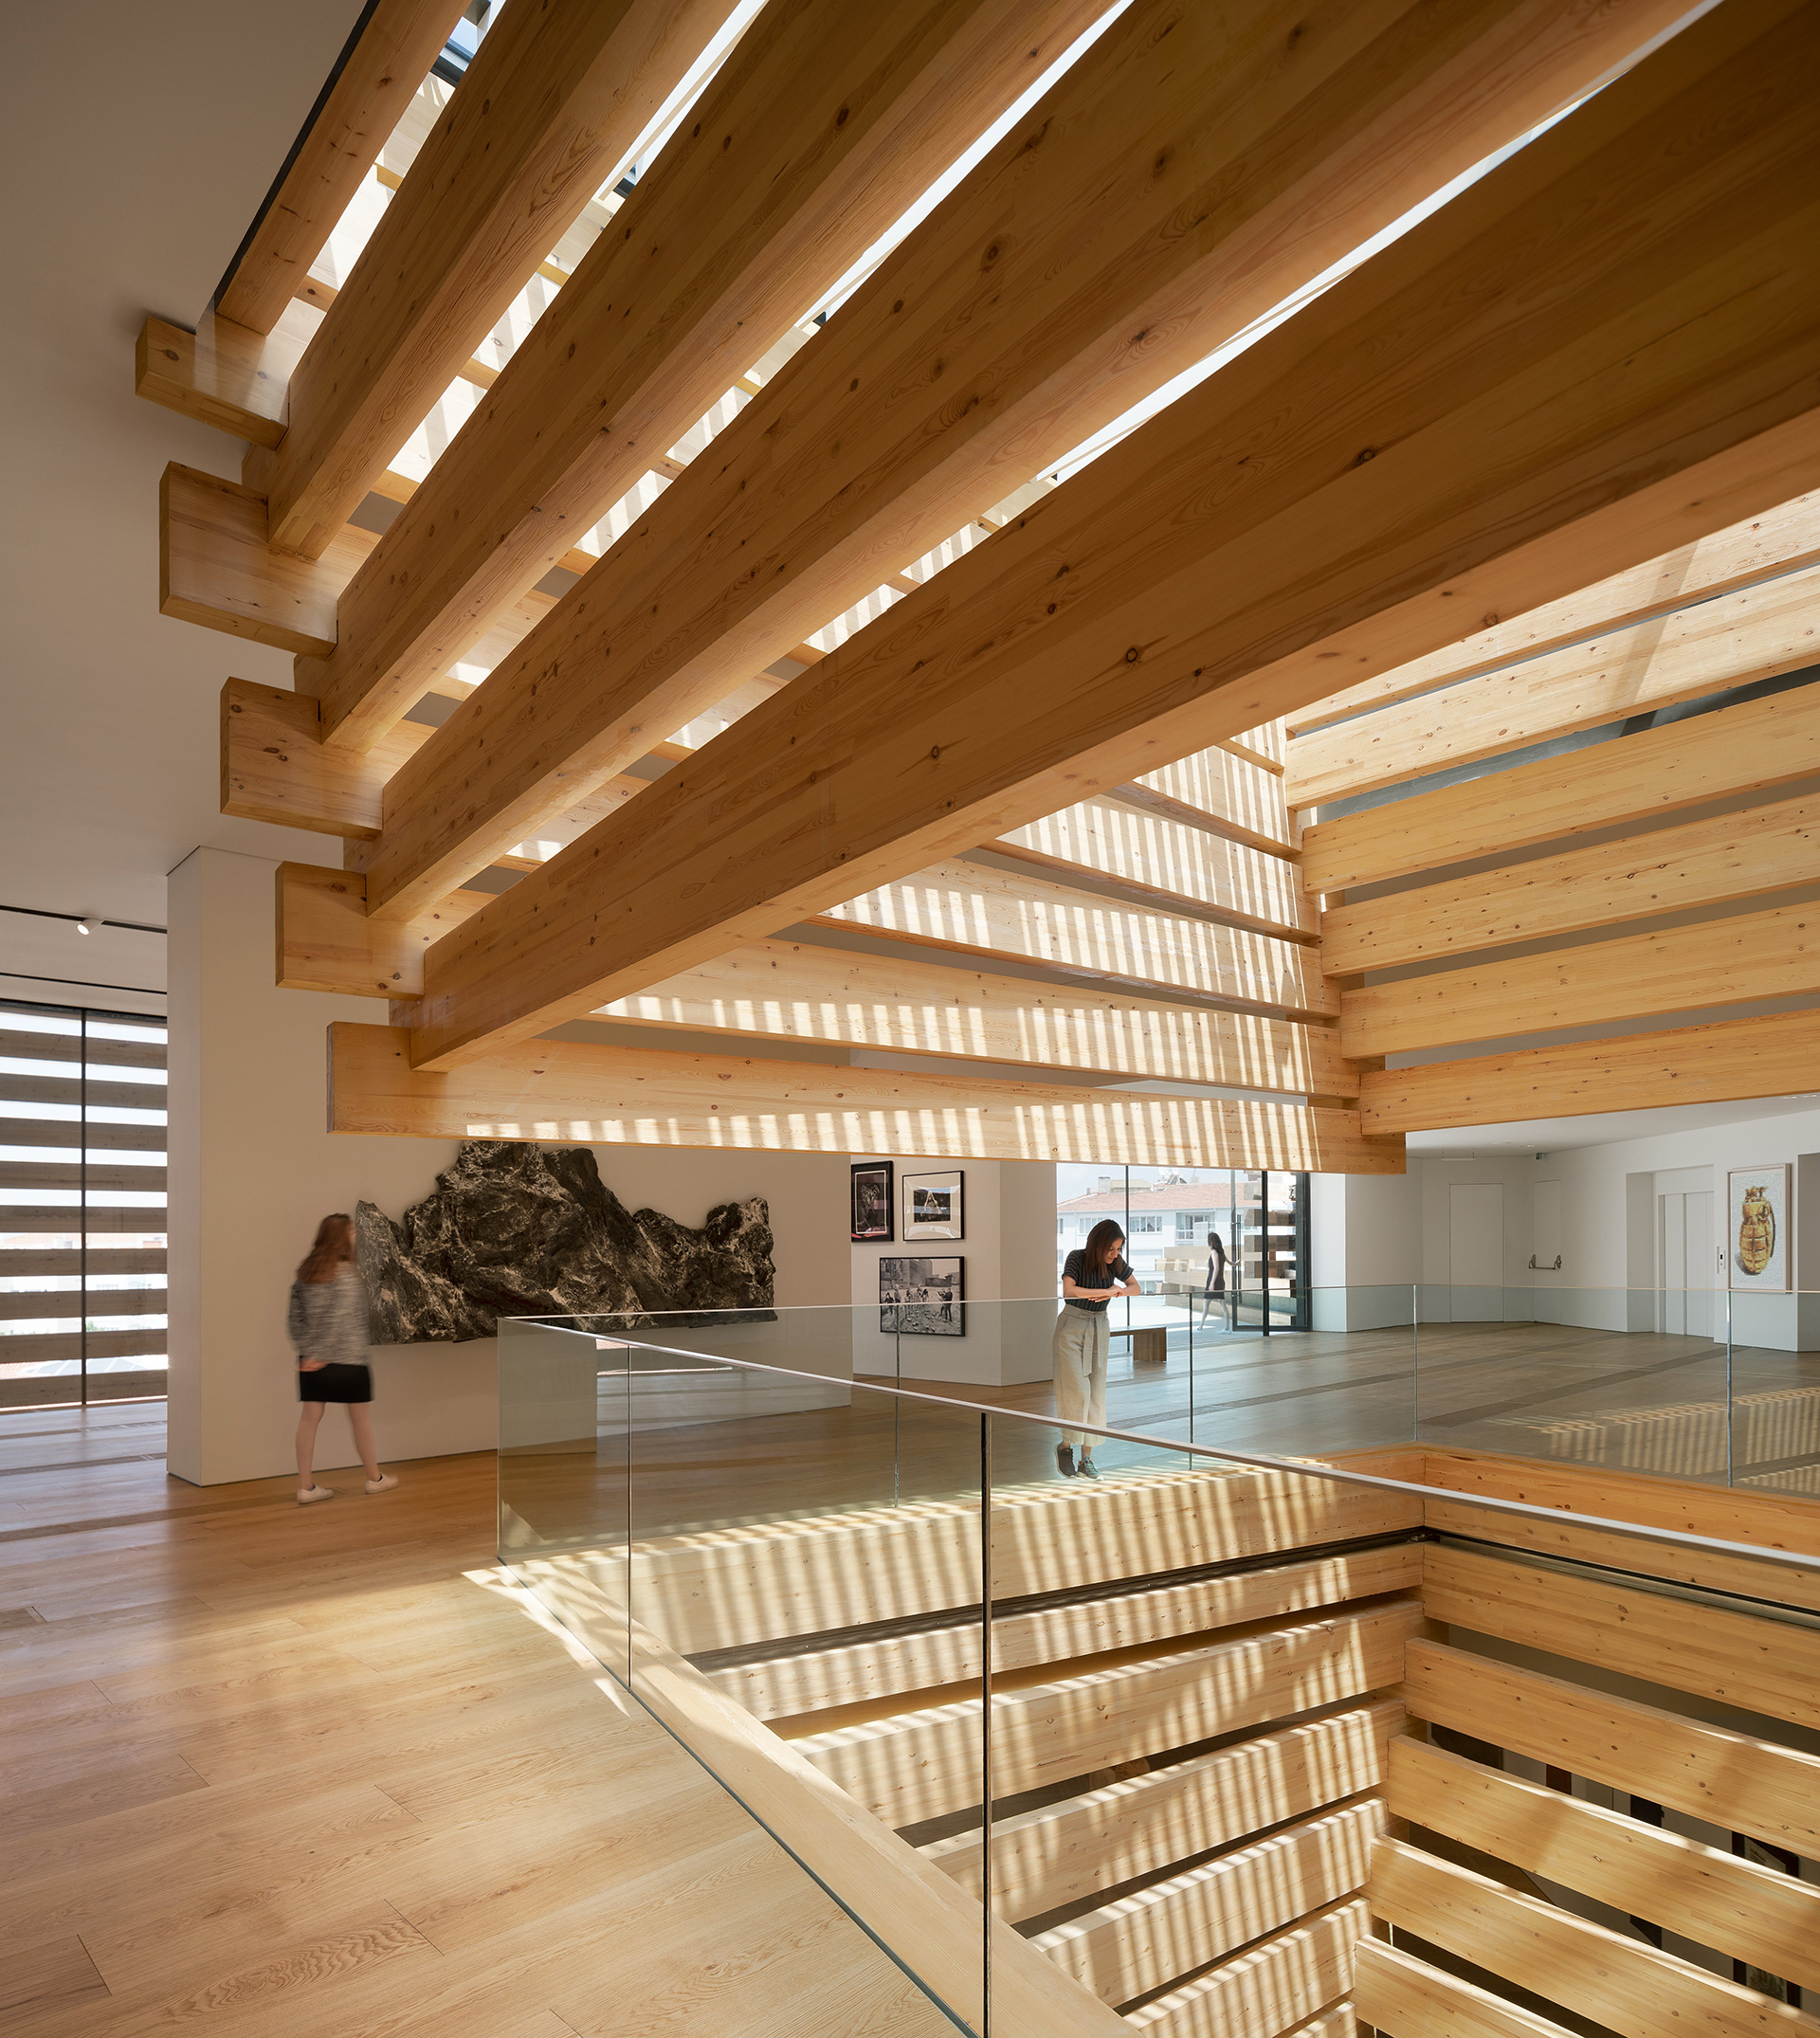 Odunpazari Modern Museum – exhibition space | Odunpazari Modern Museum| Kengo Kuma and Associates | STIR